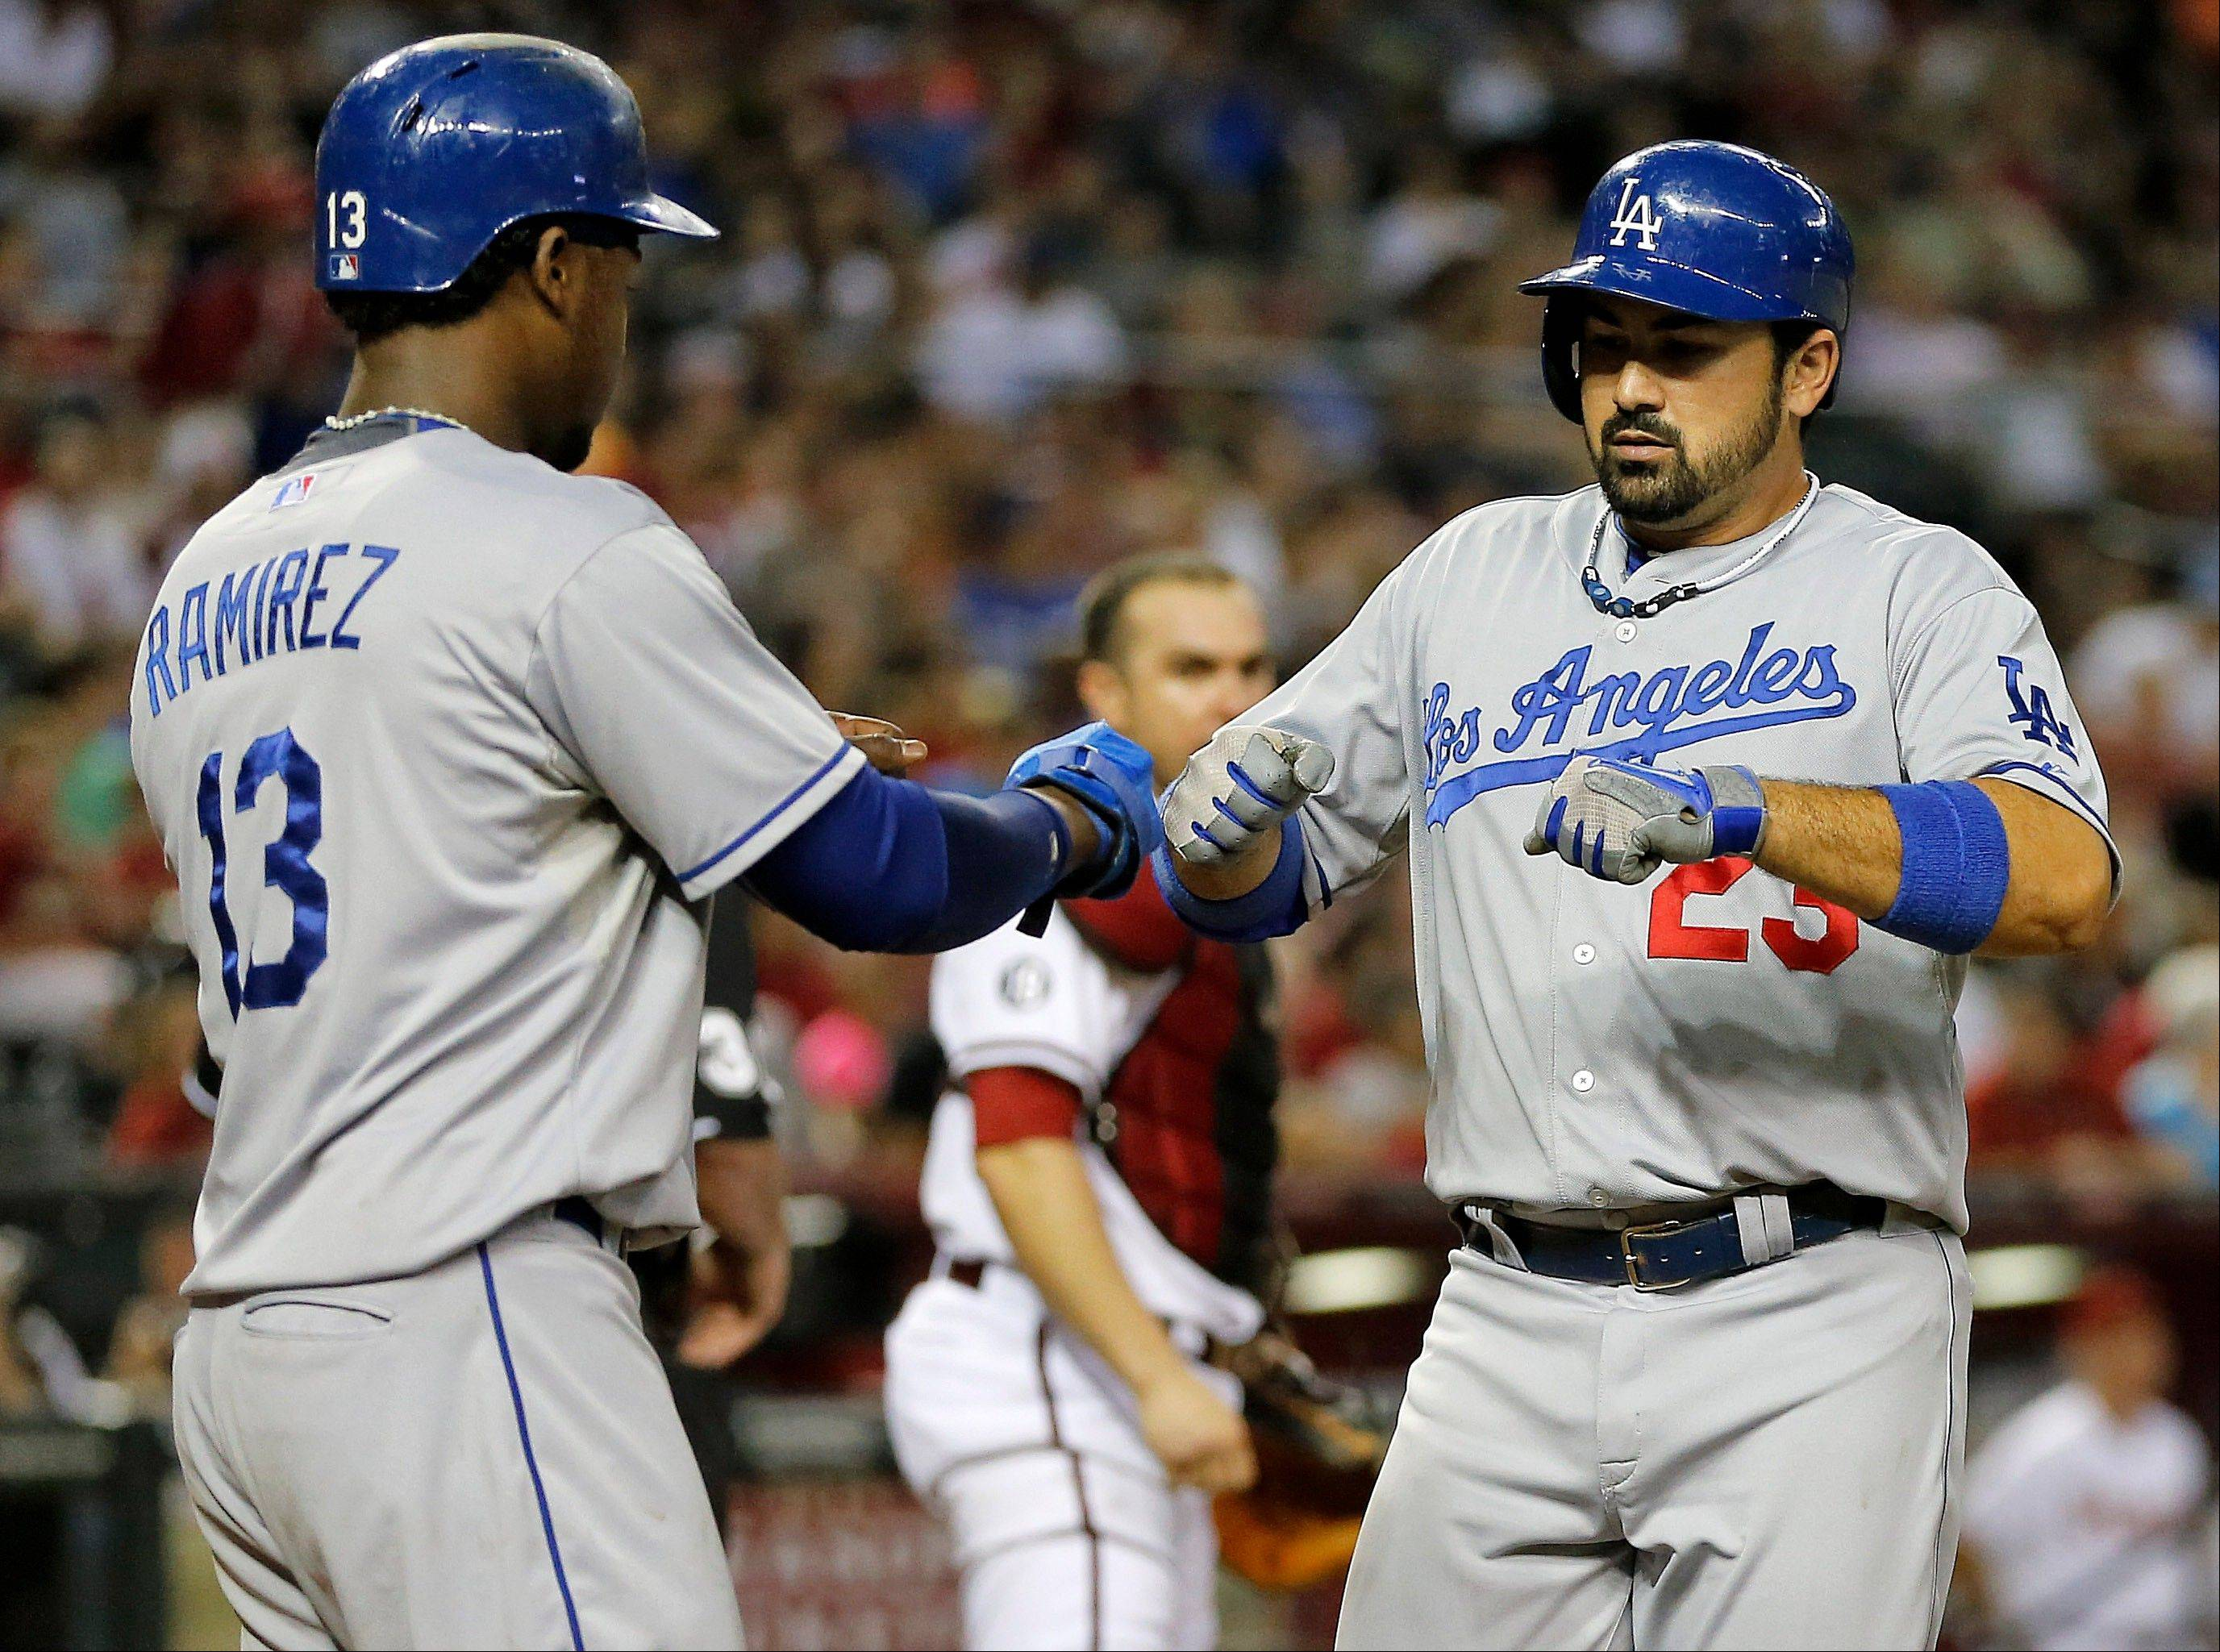 Adrian Gonzalez has been a solid addition to the Los Angeles Dodgers' lineup.